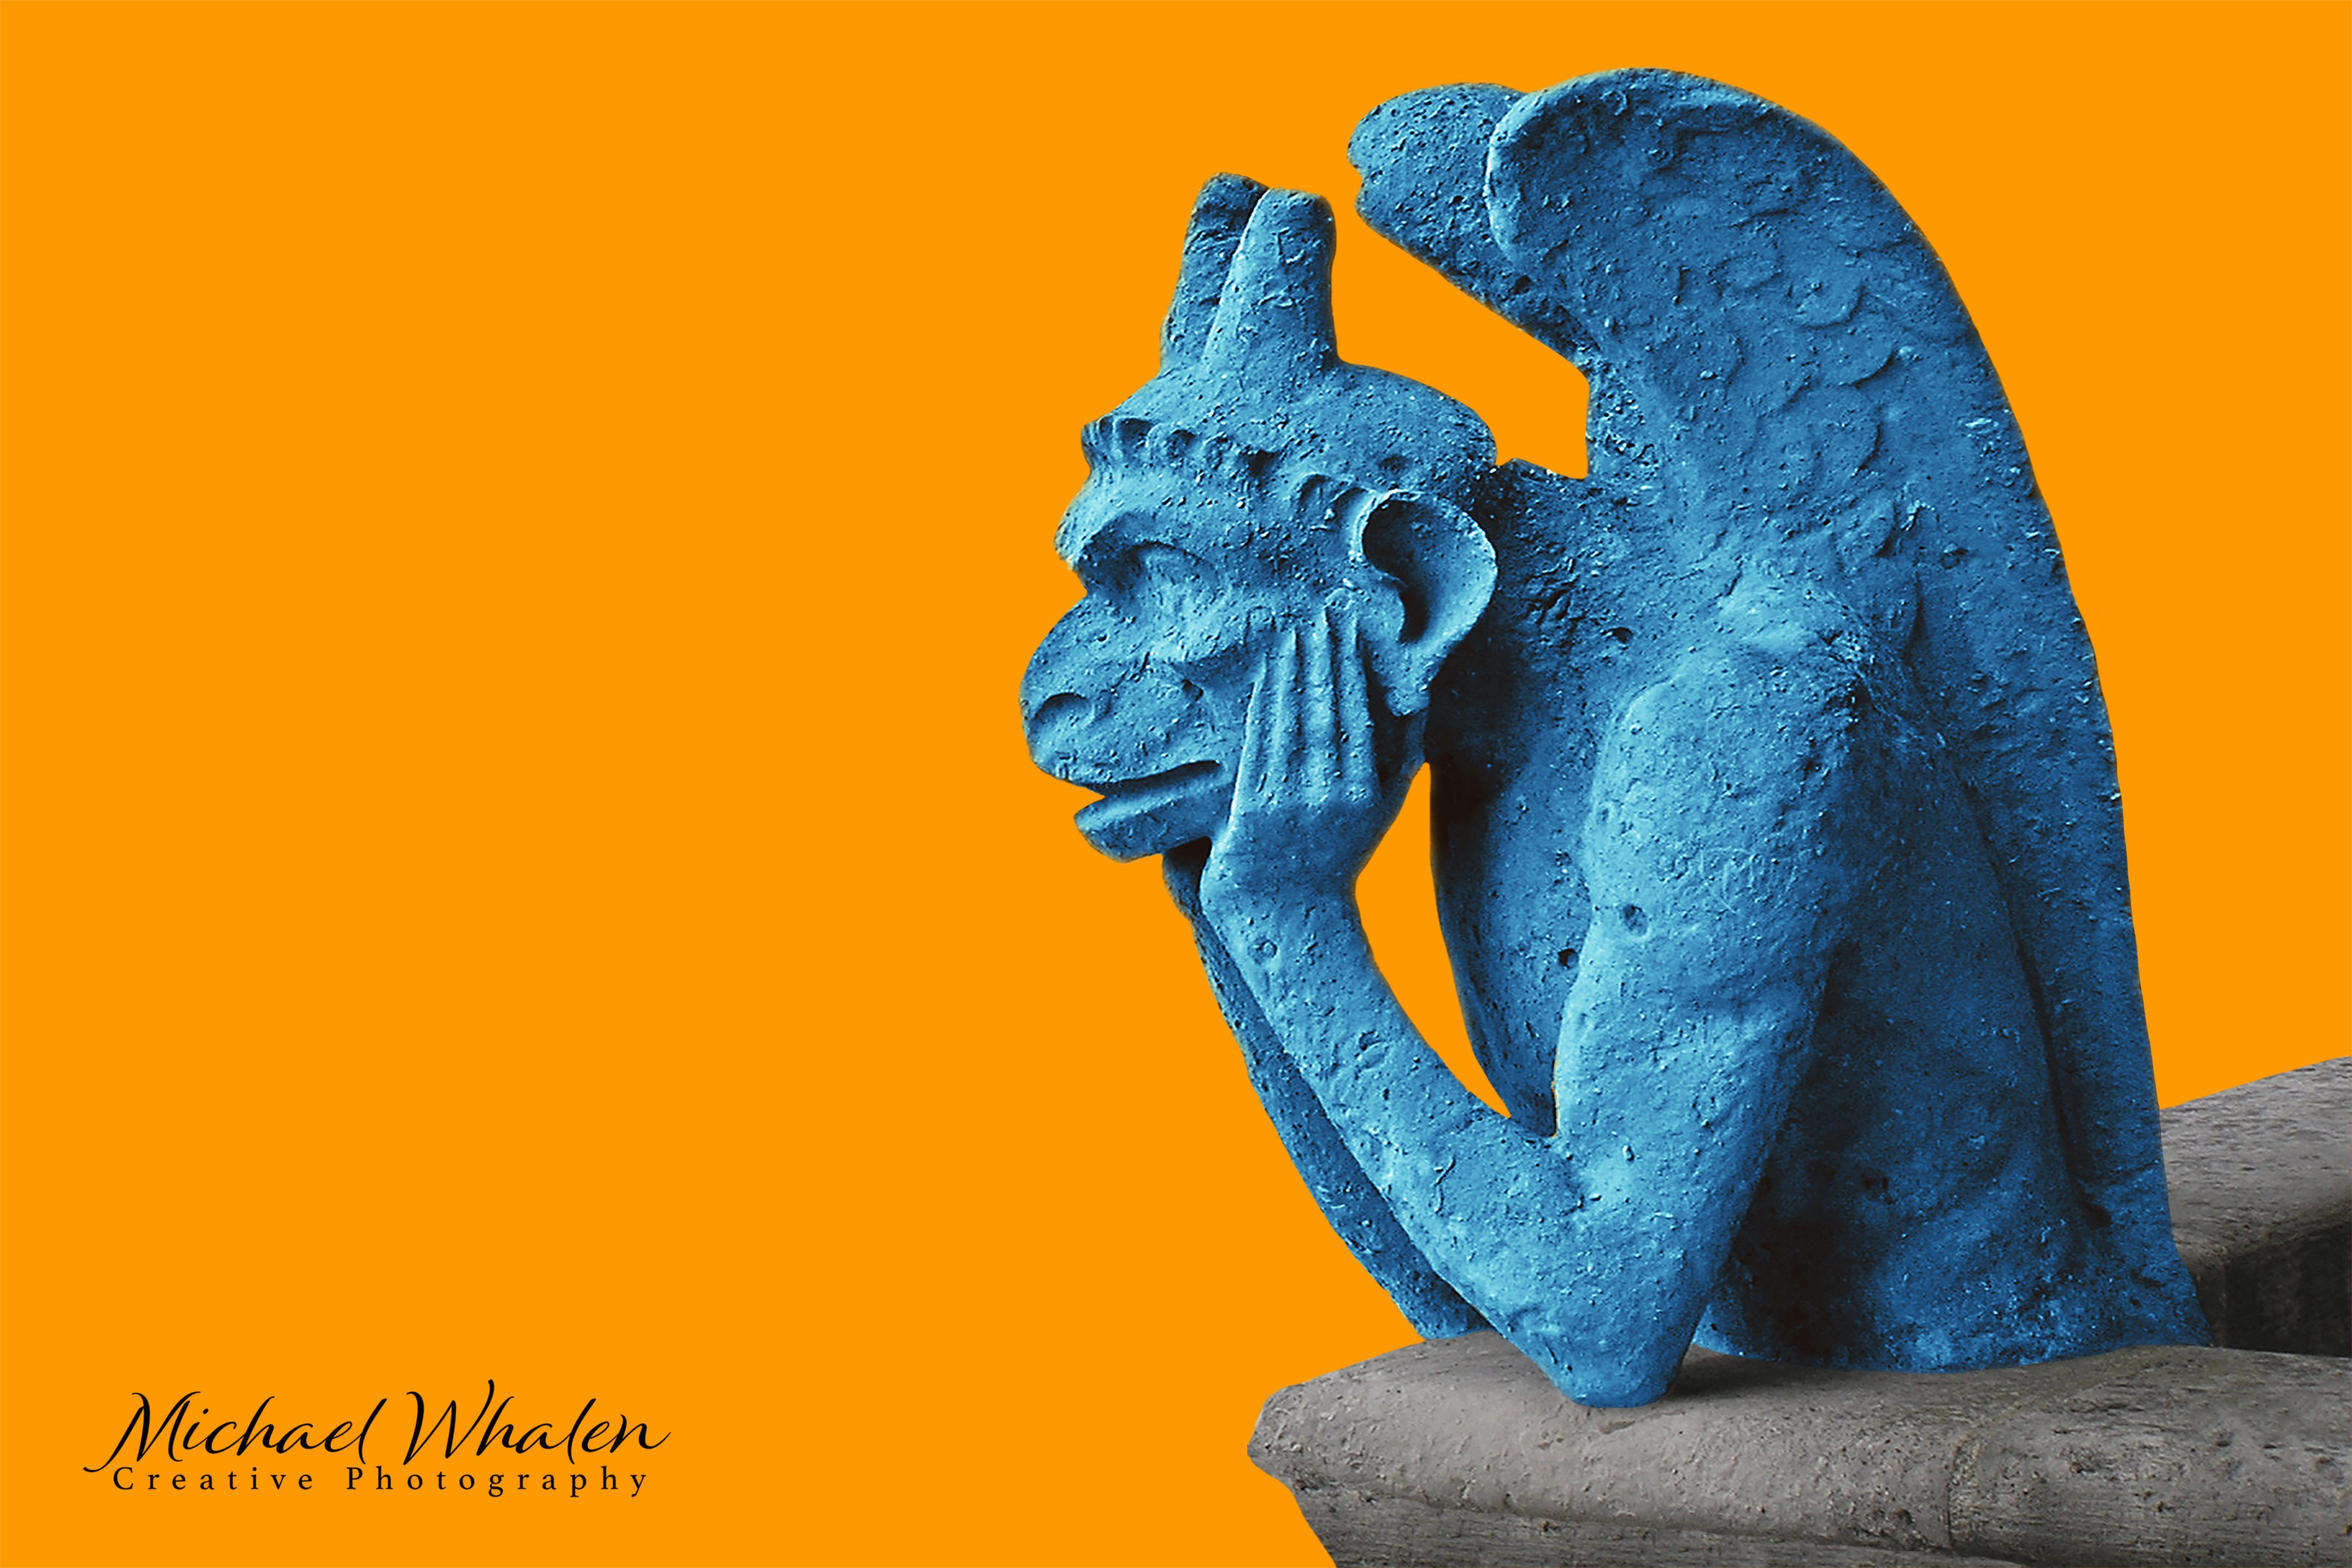 Contemplative gargoyle at Notre Dame, colored blue against an orange background.